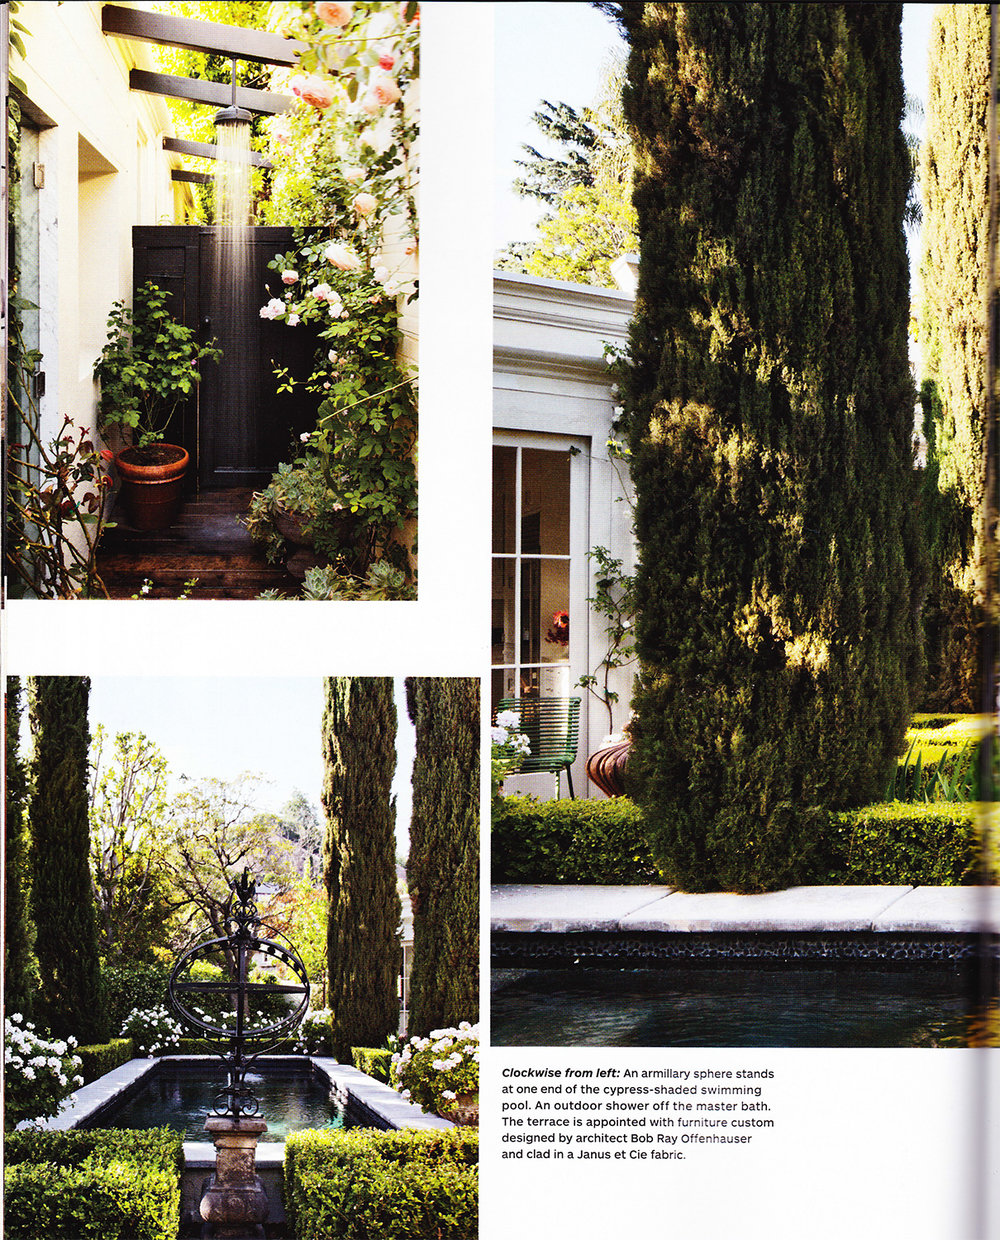 archdigest4-large.jpg